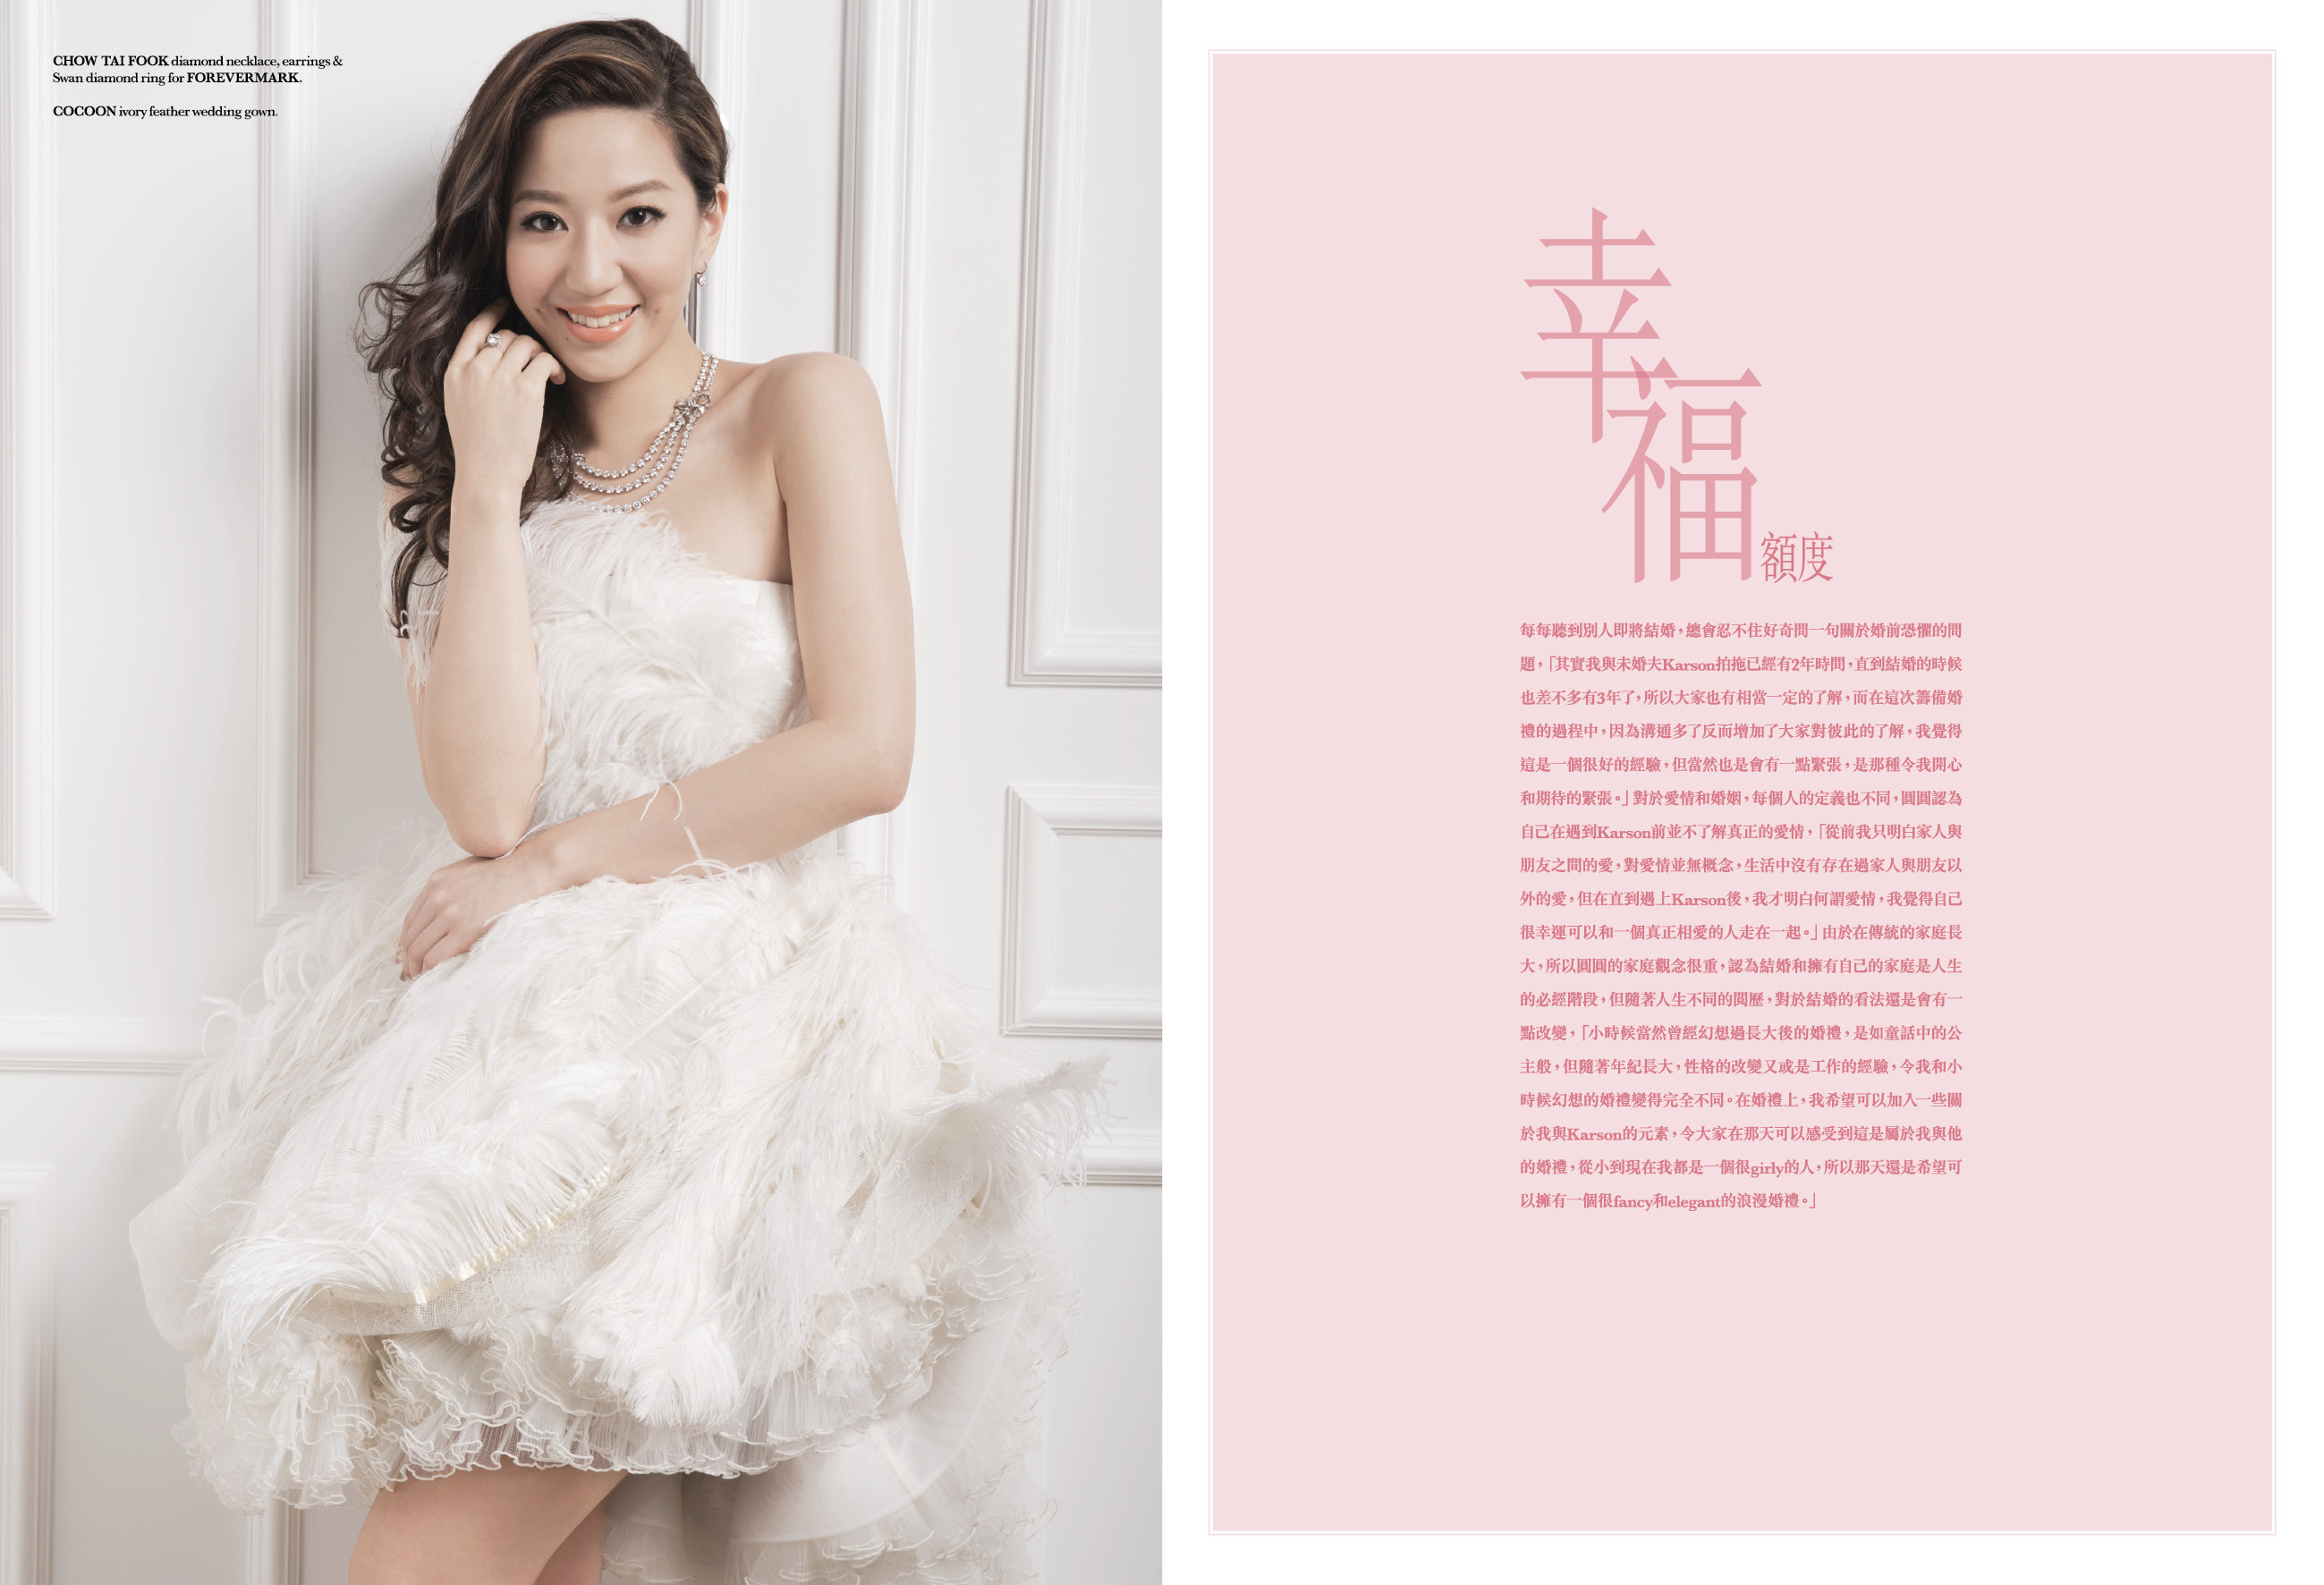 169-wedding cover story2